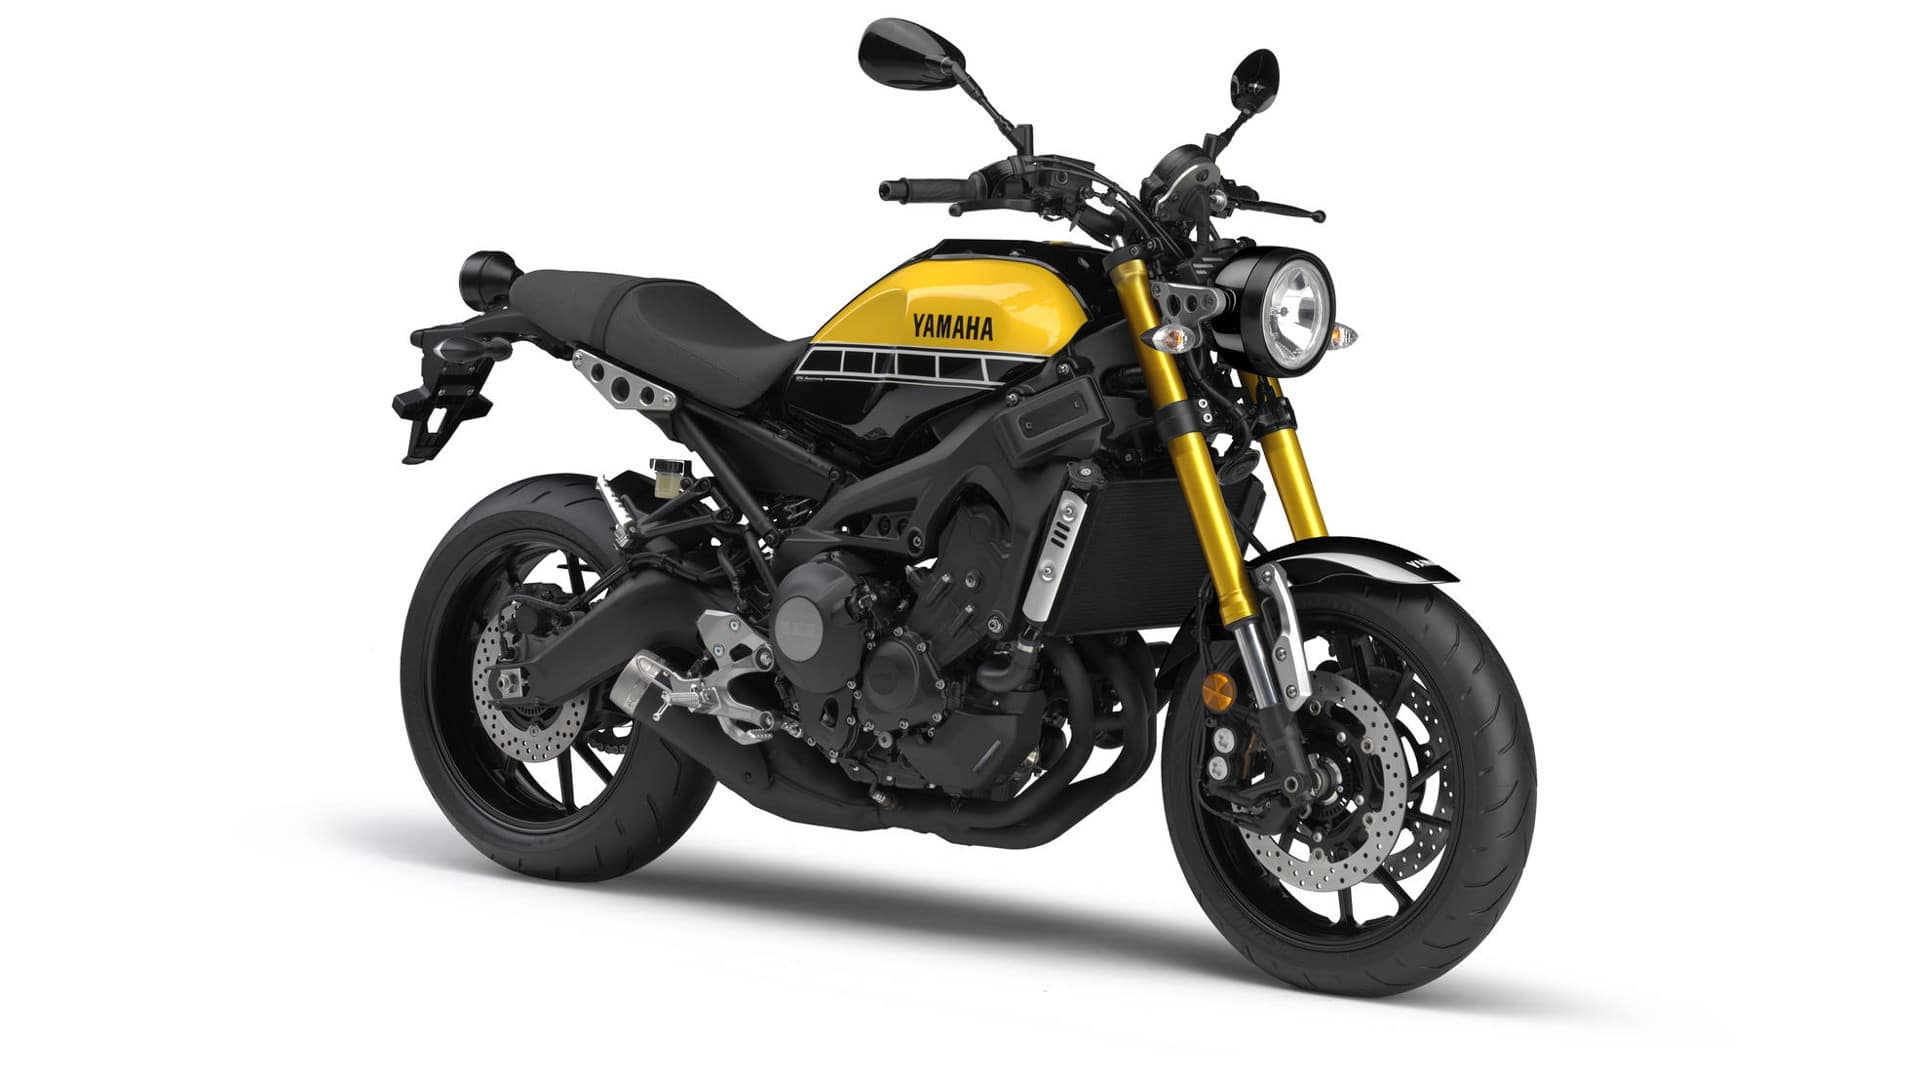 2016 Yamaha XSR900 in 60th Anniversary yellow and black colour scheme.